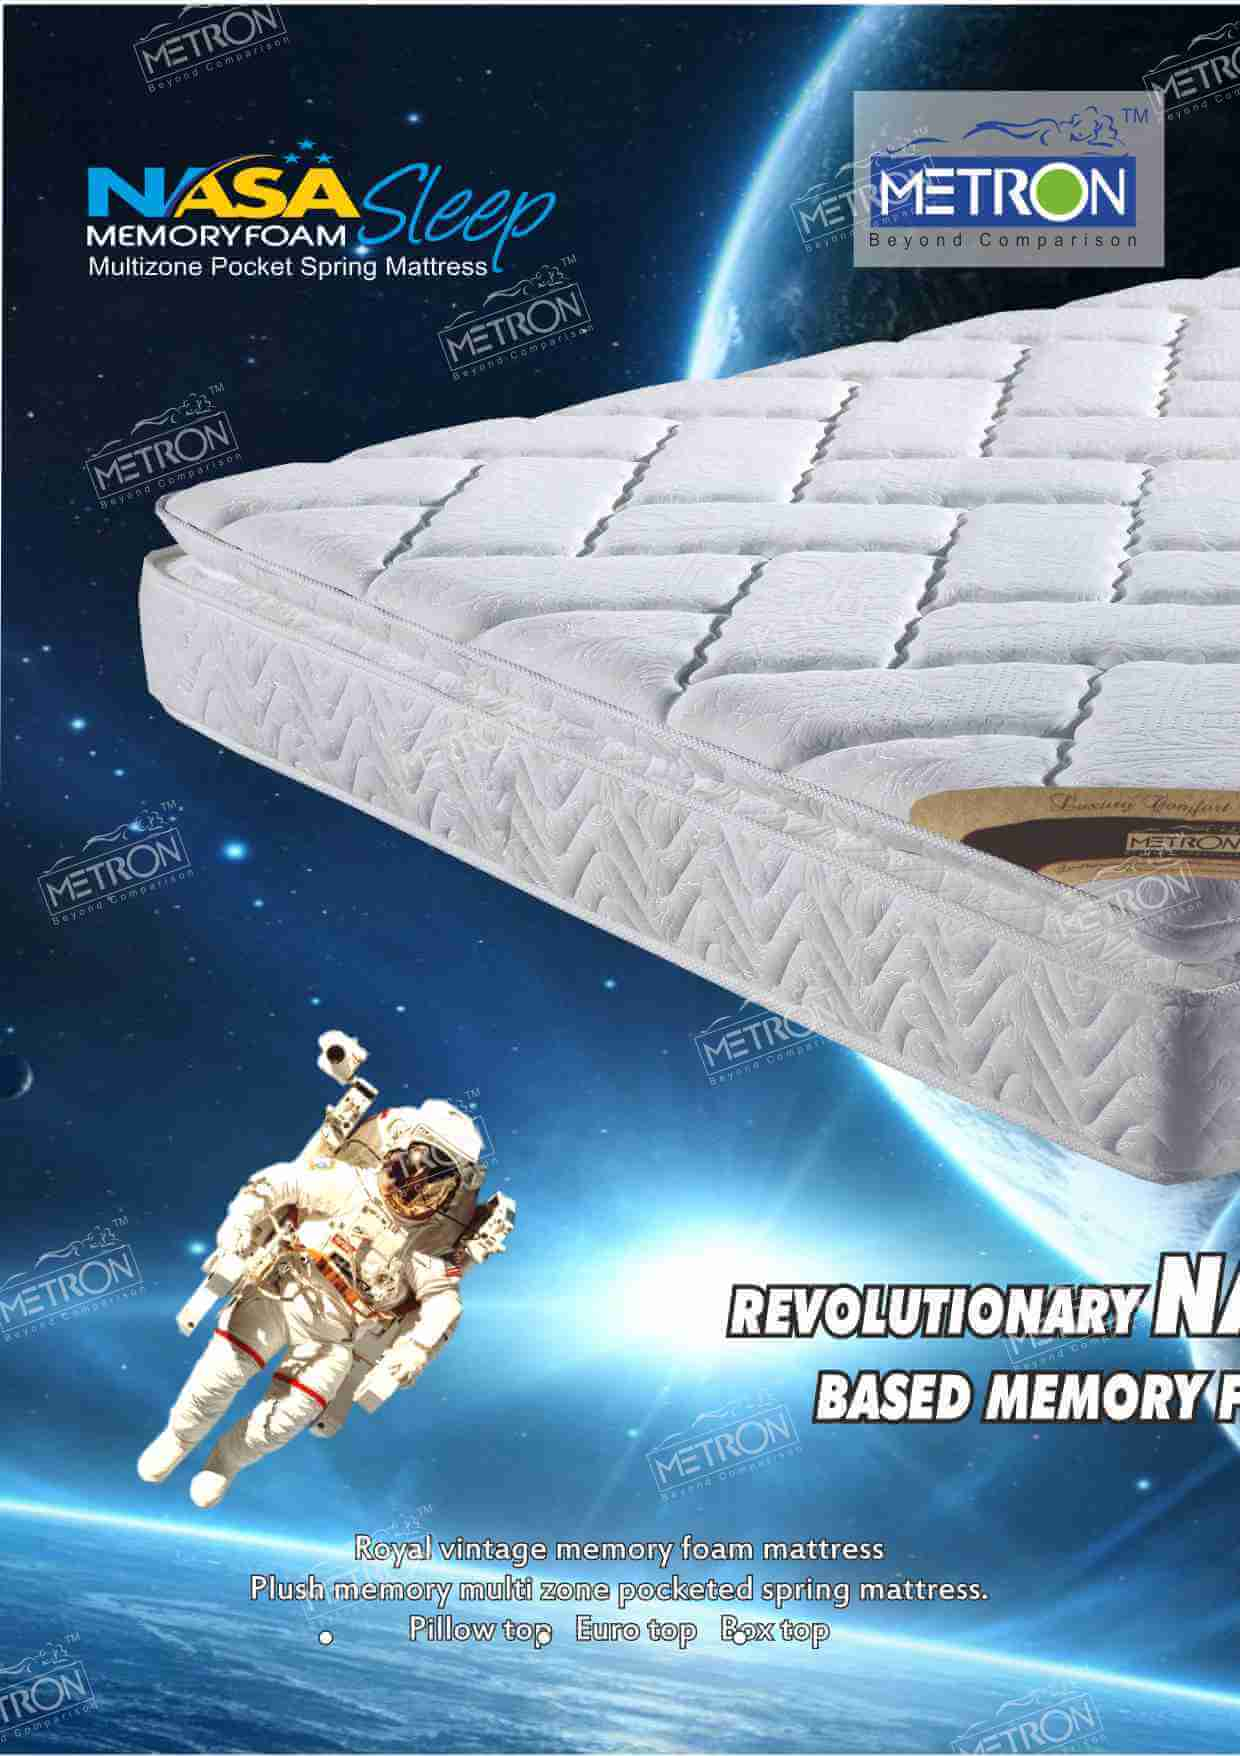 Metron Royal Vintage memory foam mattress